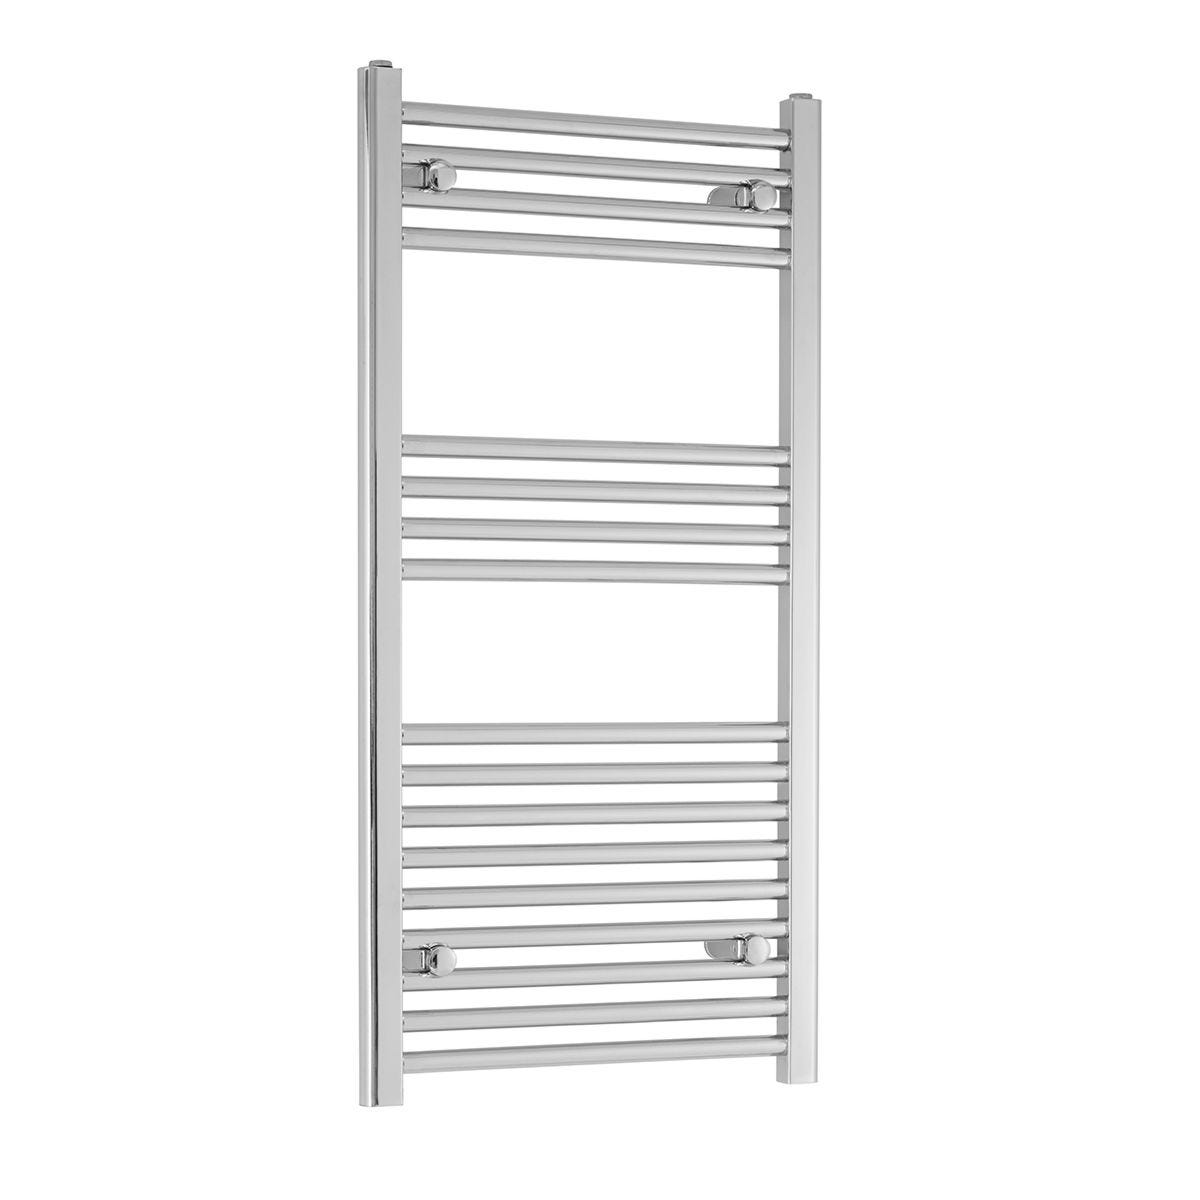 Heating Style Blythe Ladder Rail 1400x600mm Straight - Chrome